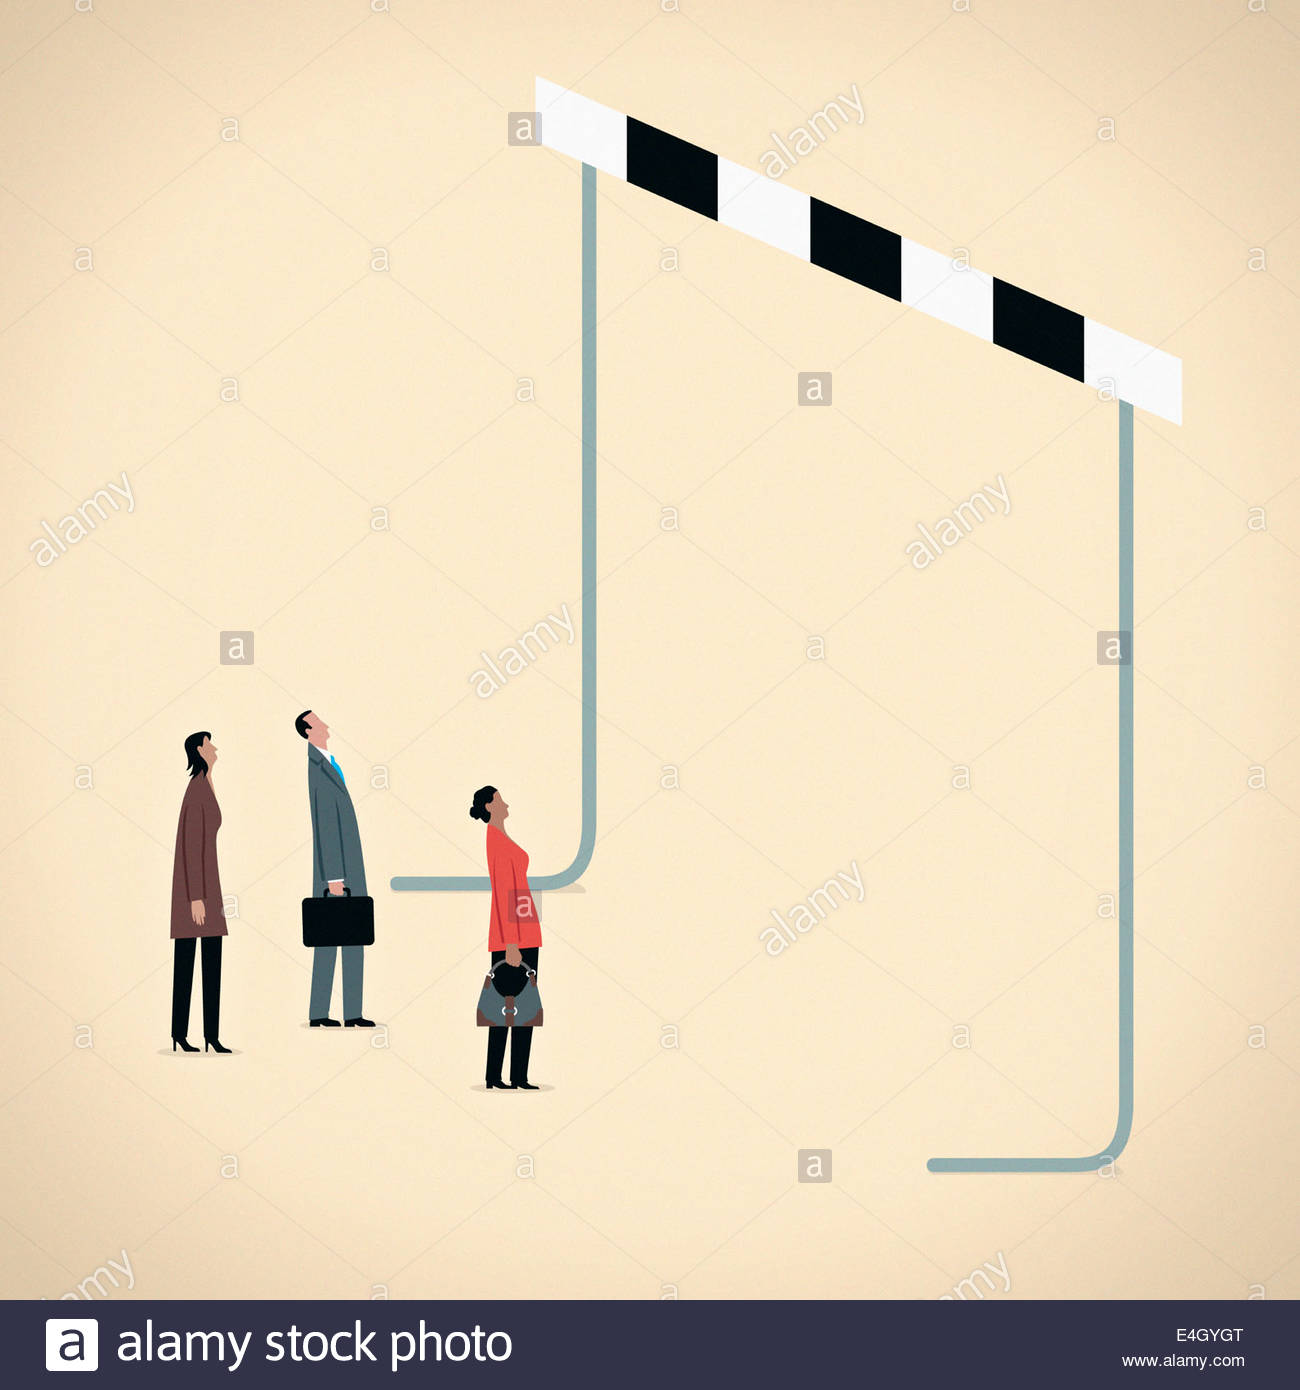 Business people looking up at high oversized hurdle - Stock Image